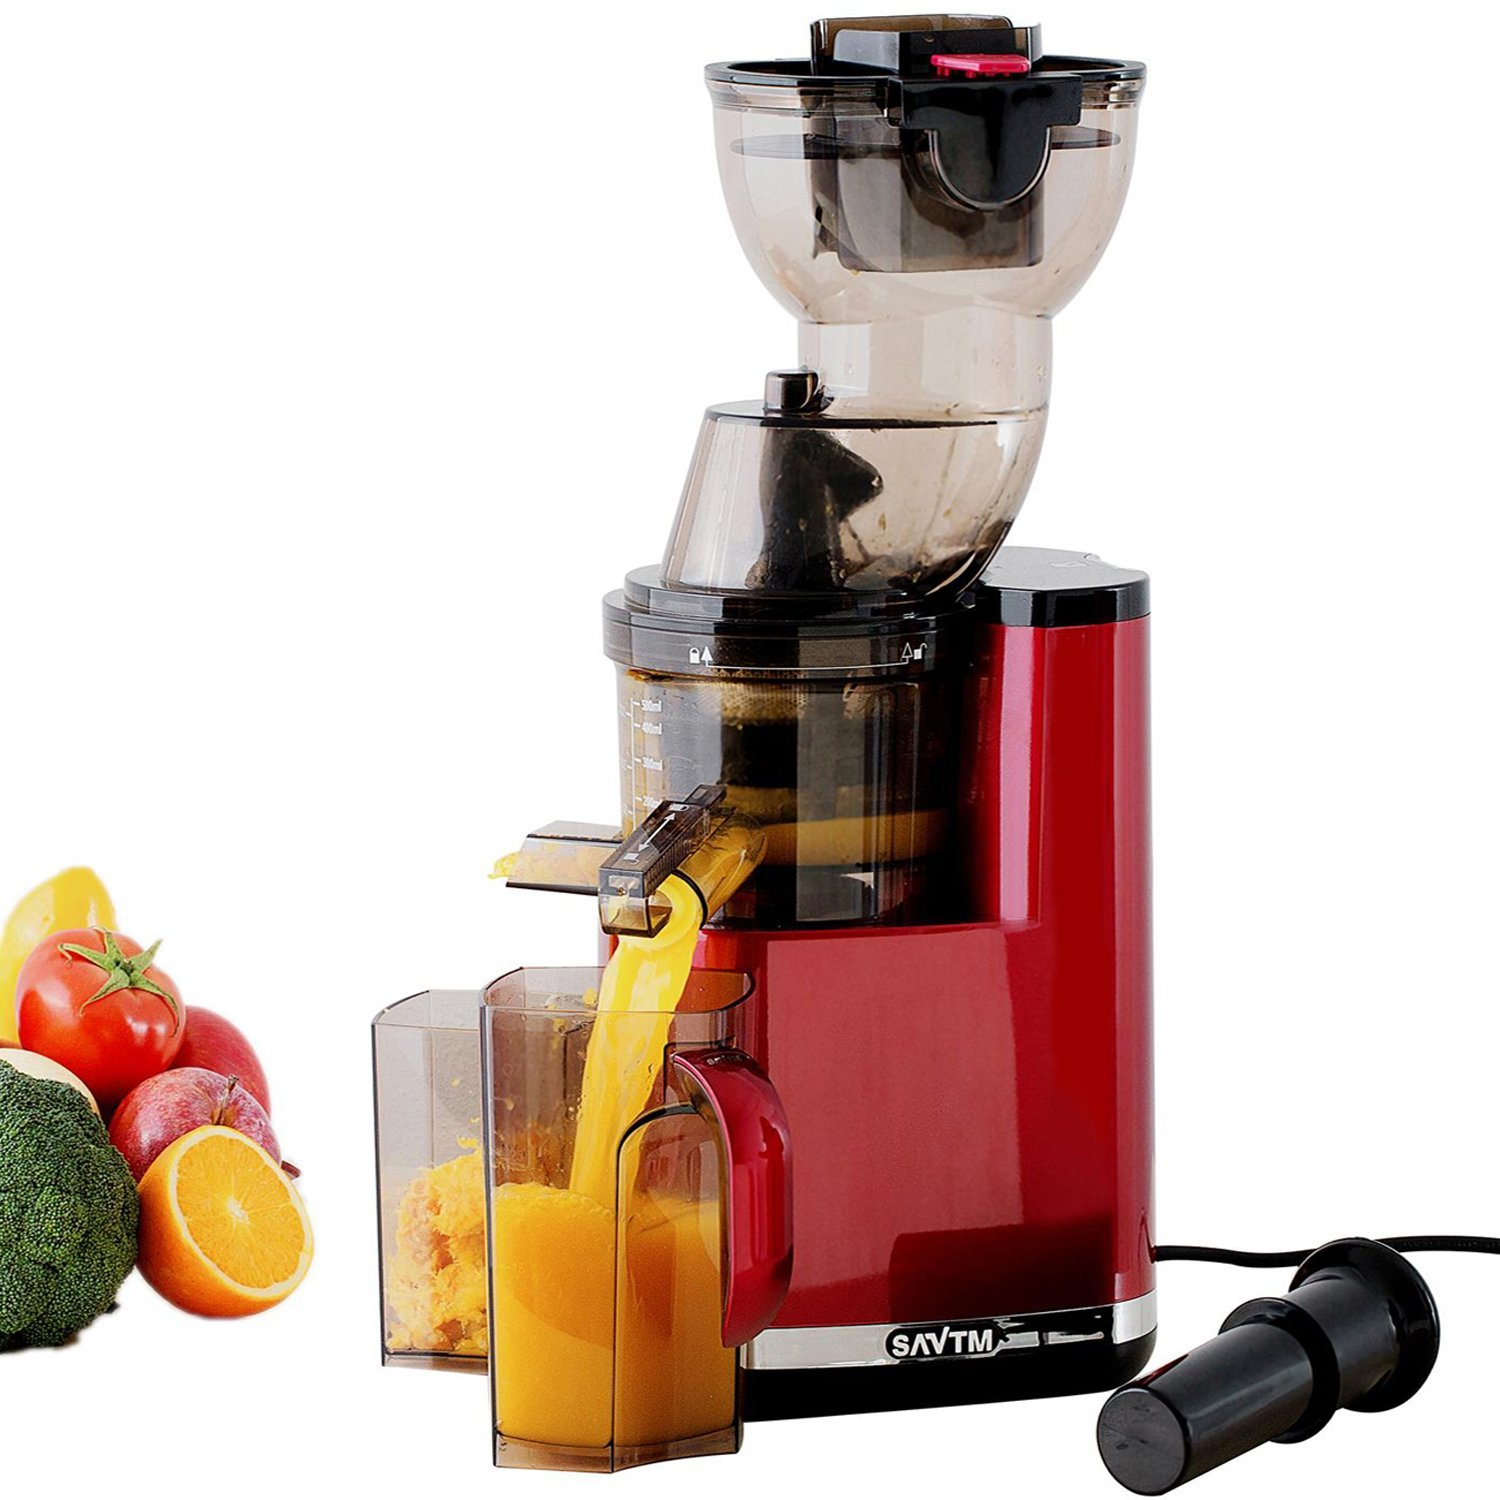 SAvTM Electric Masticating Wide Mouth Whole Chute Anti-Oxidative Fruit Juicer eBay